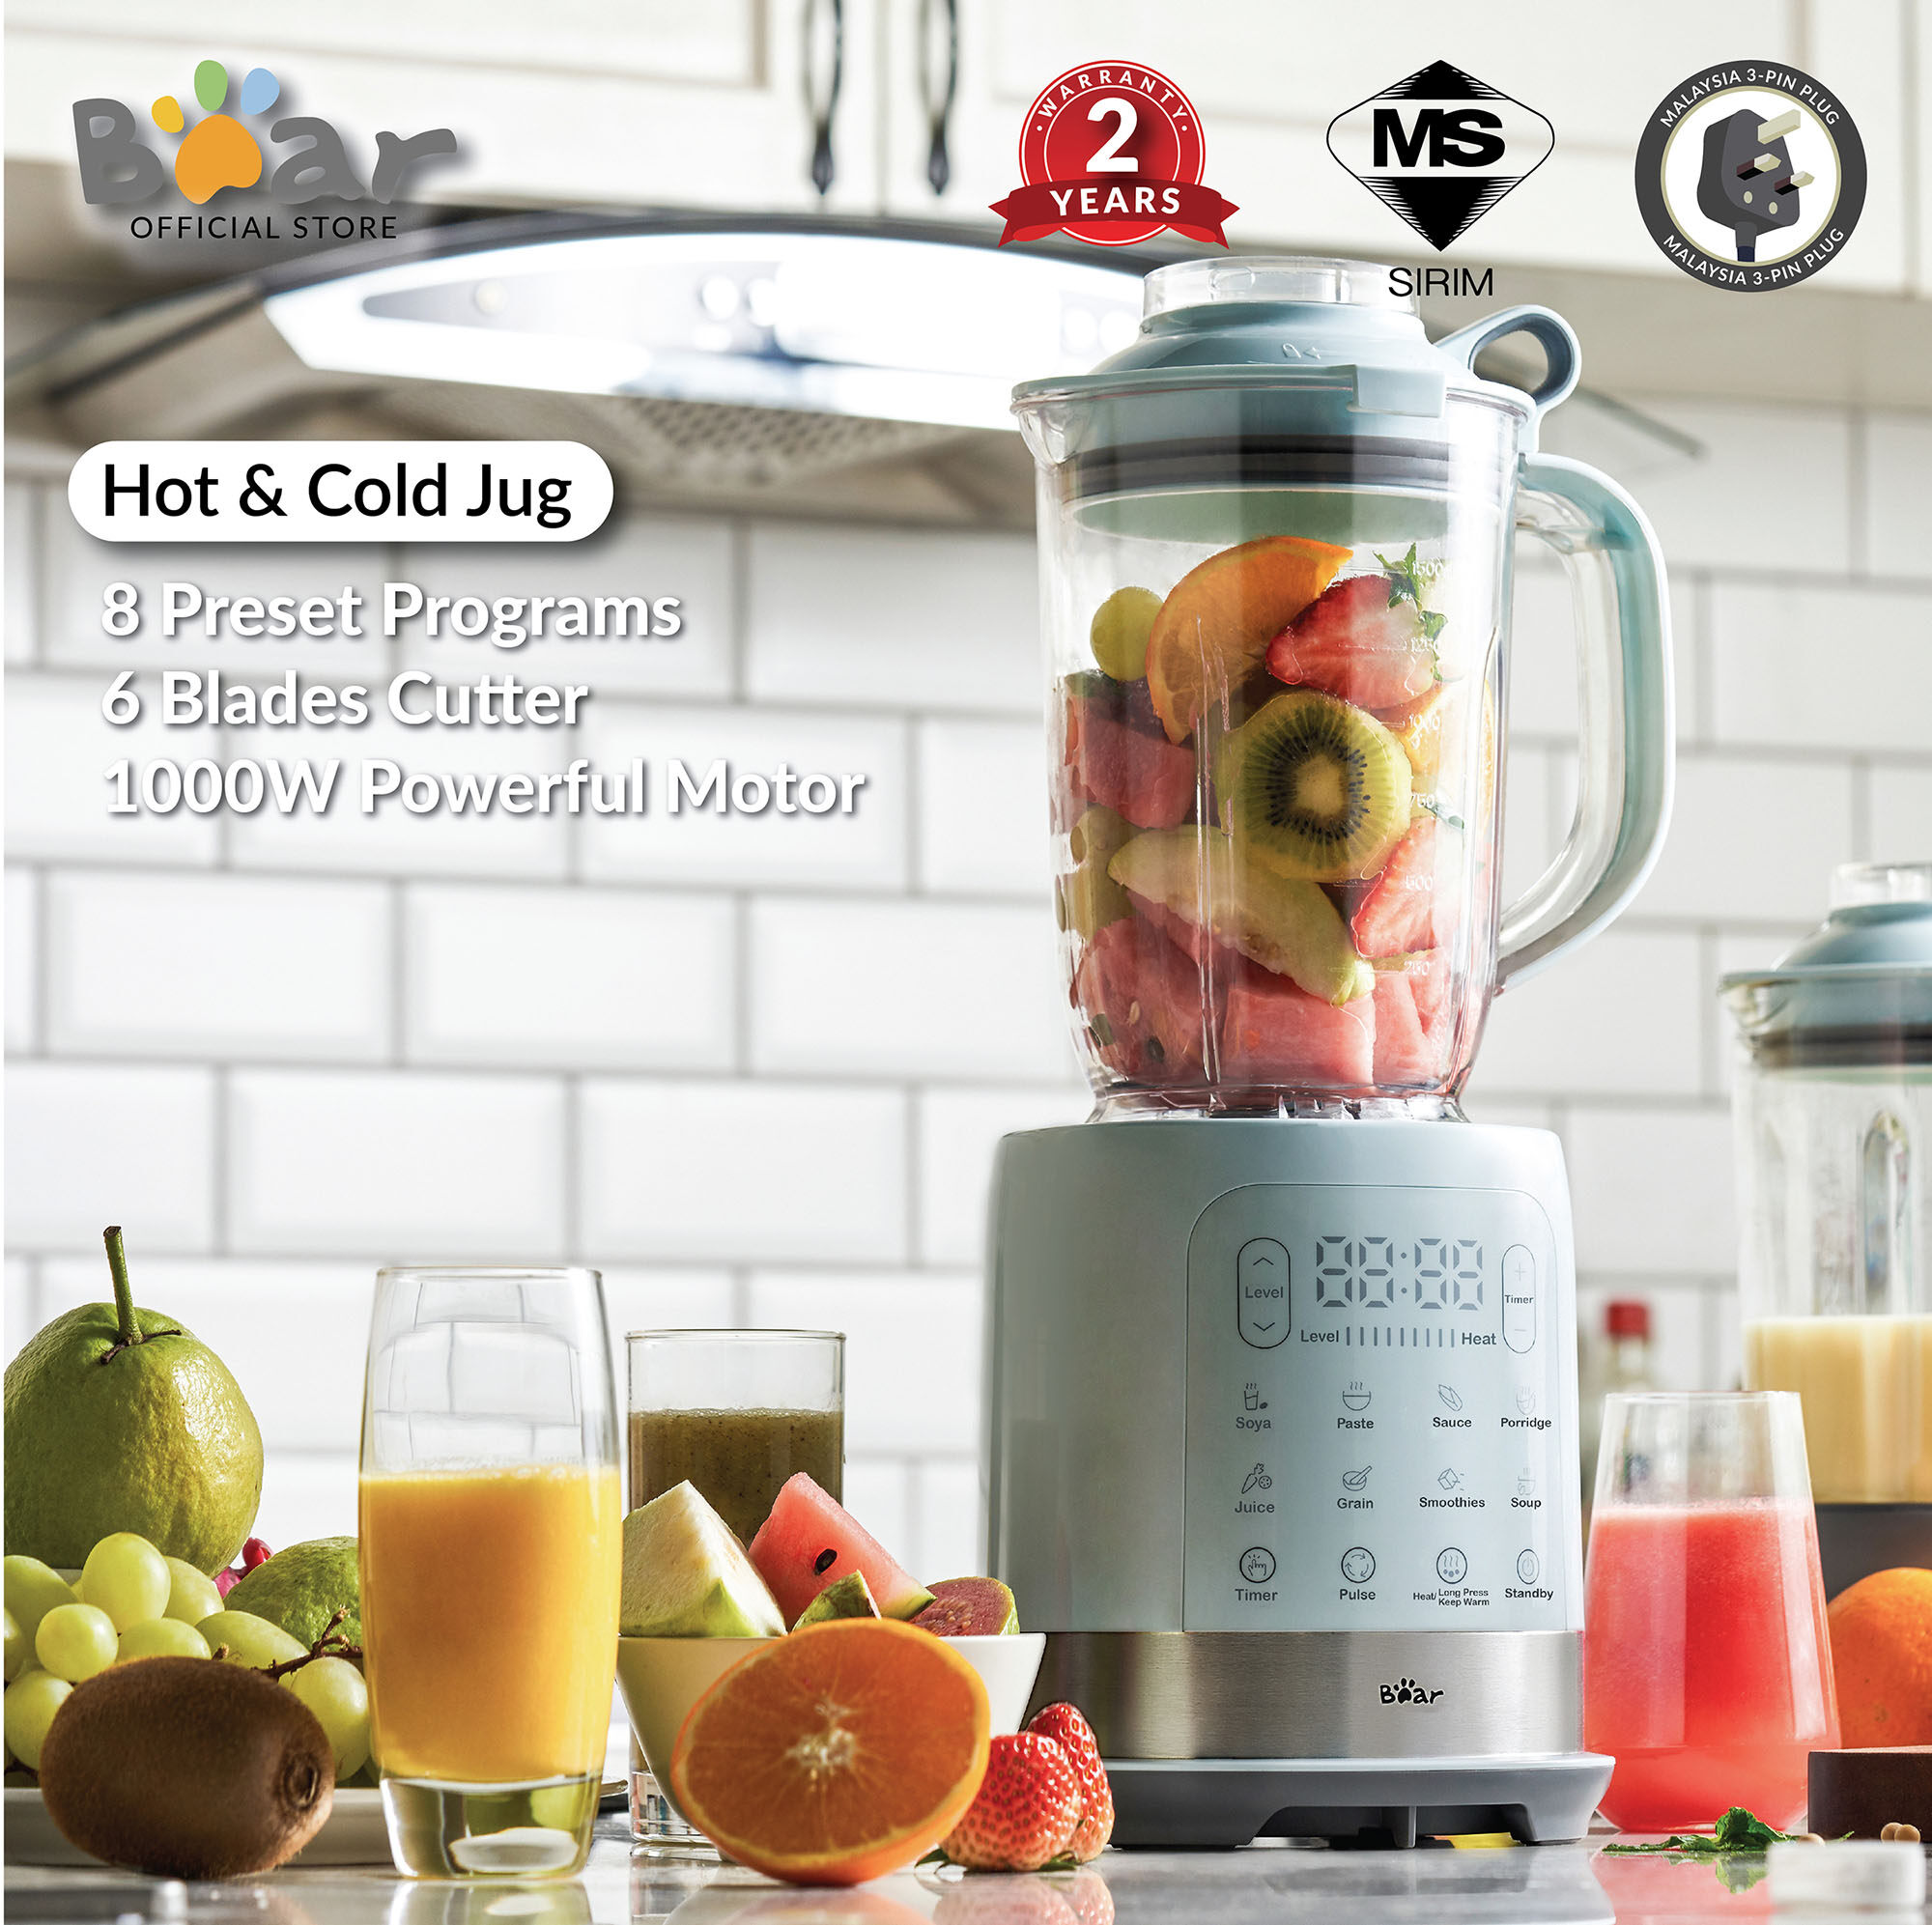 Bear Multifunctional High-speed Blender PBJ-B10N1 /smart blender 1.5L/juicer /soybean Milk maker/household reservation heating broken food machine Meat grinder Mixer food supplement /Intelligent broken wall boiling (Malaysia 3-Pin Plug)